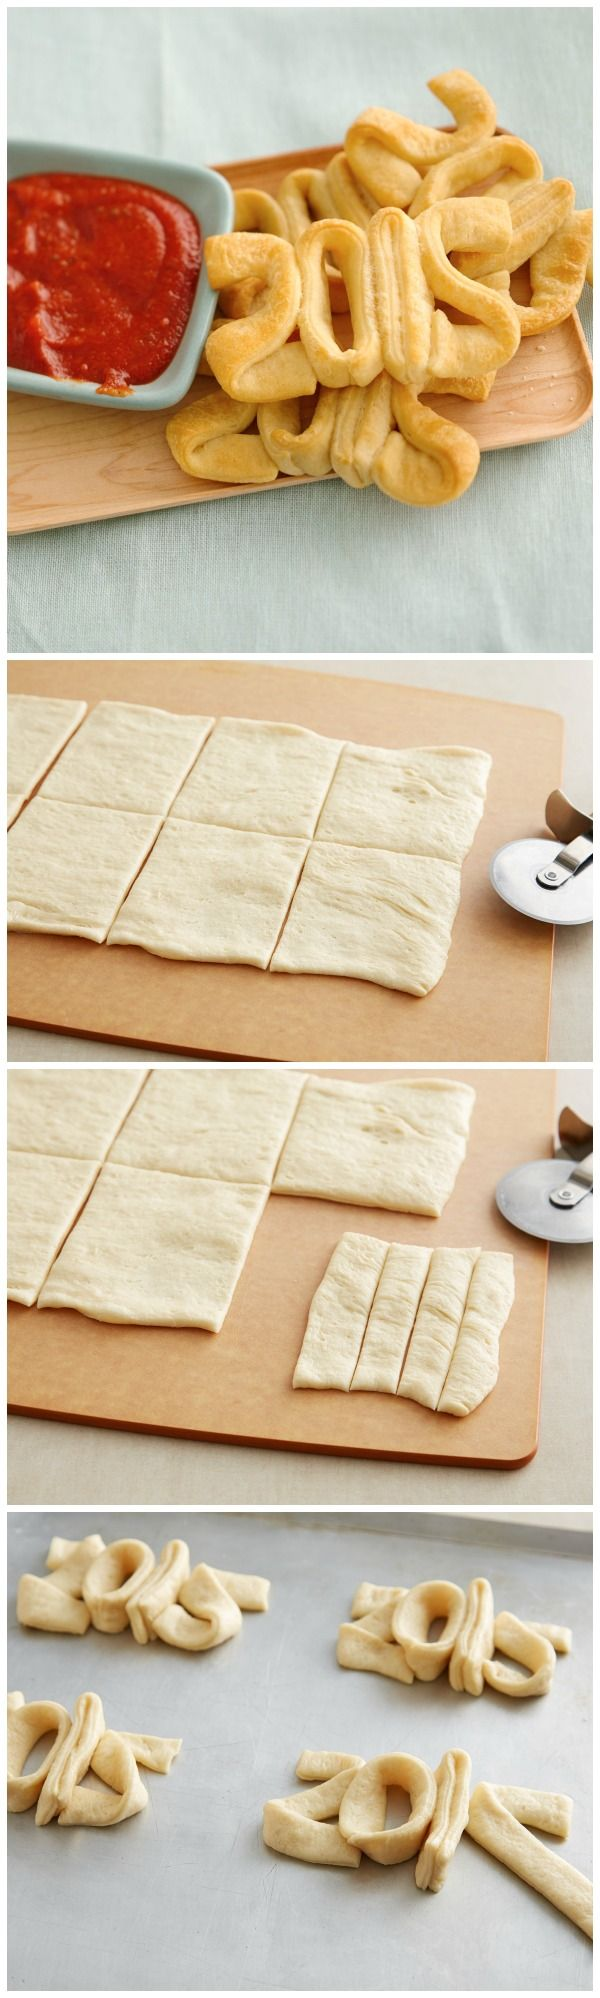 Get the kids in the kitchen on NYE to whip up a fun appetizer to ring in the new year with Pillsbury crescent dough! Great idea for party apps!